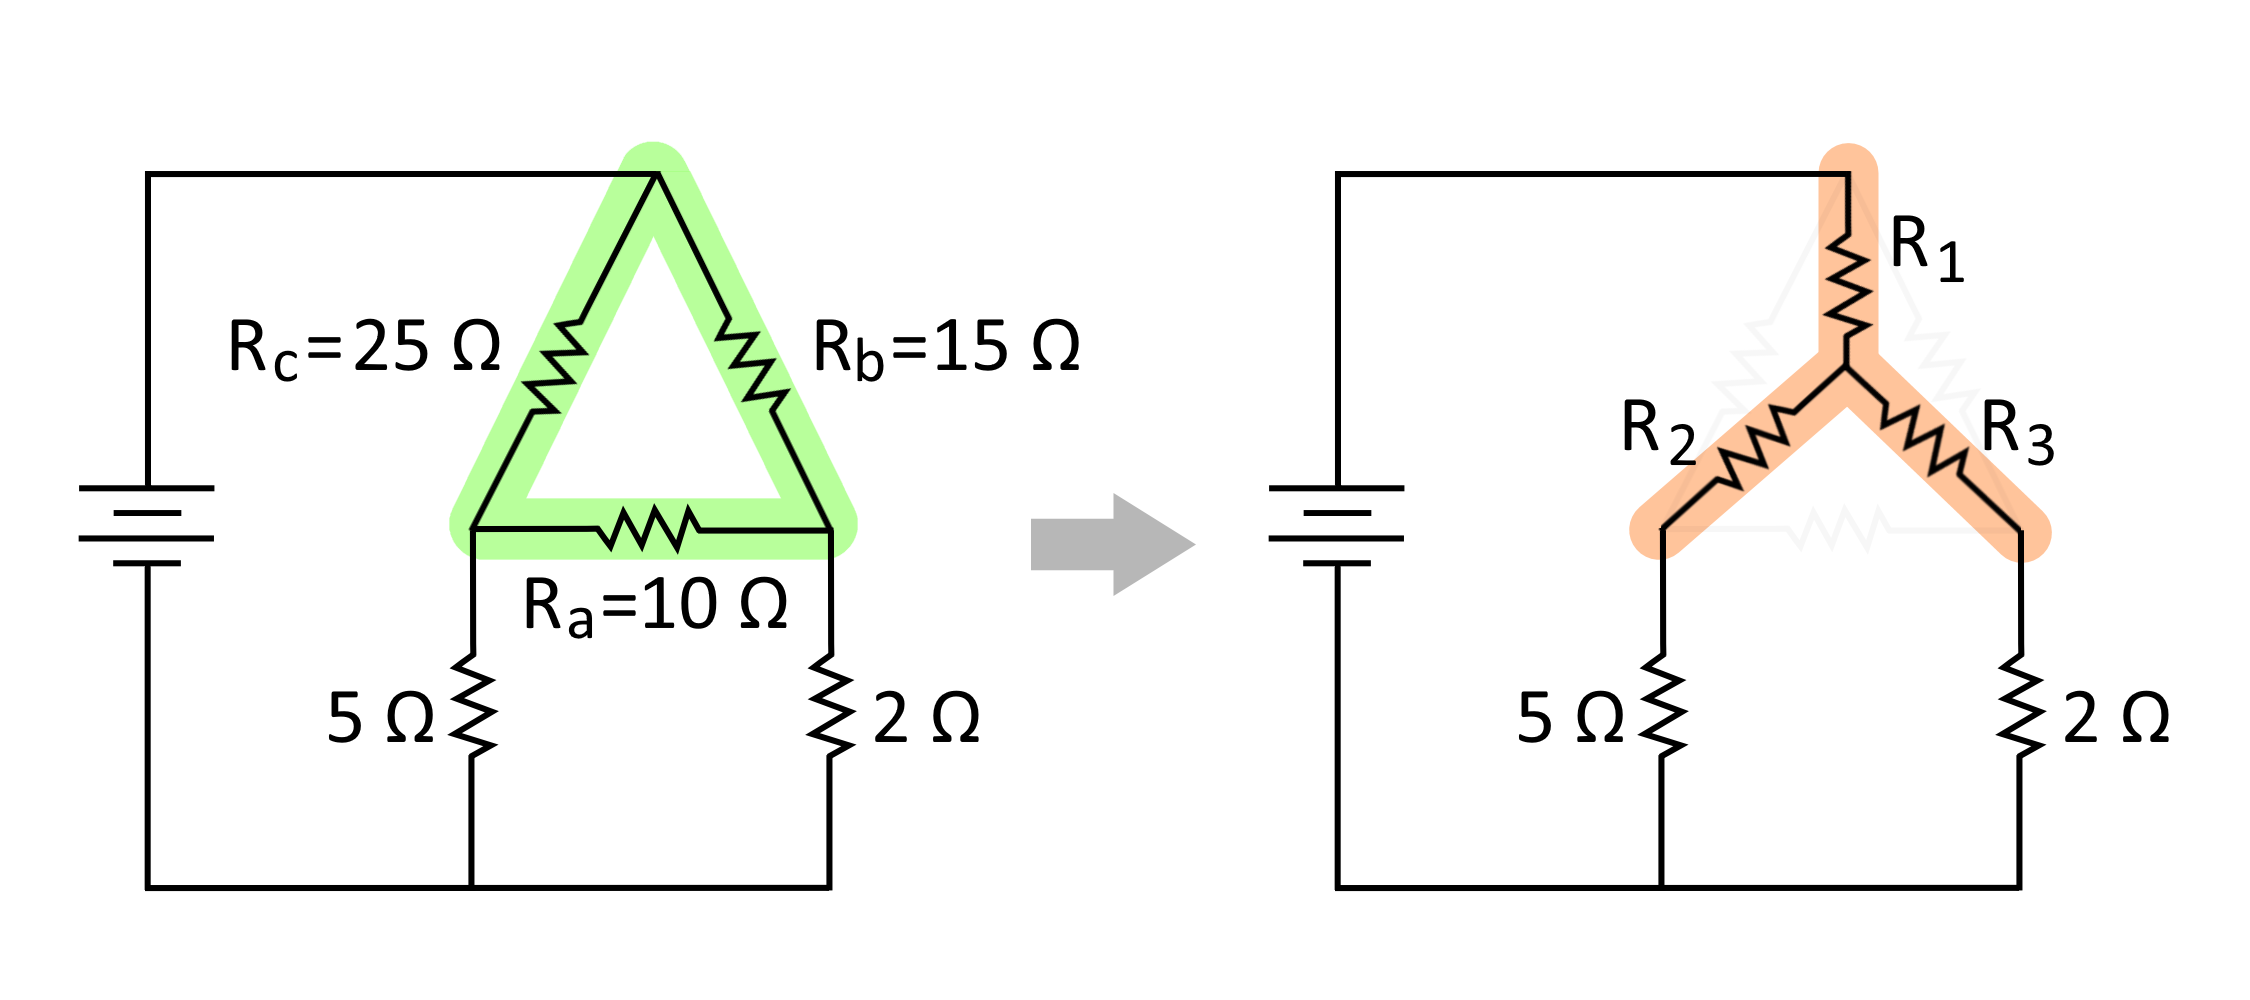 Circuit diagrams of resistors in delta configuration (highlighted in green) that will be converted to a wye configuration (highlighted in orange).